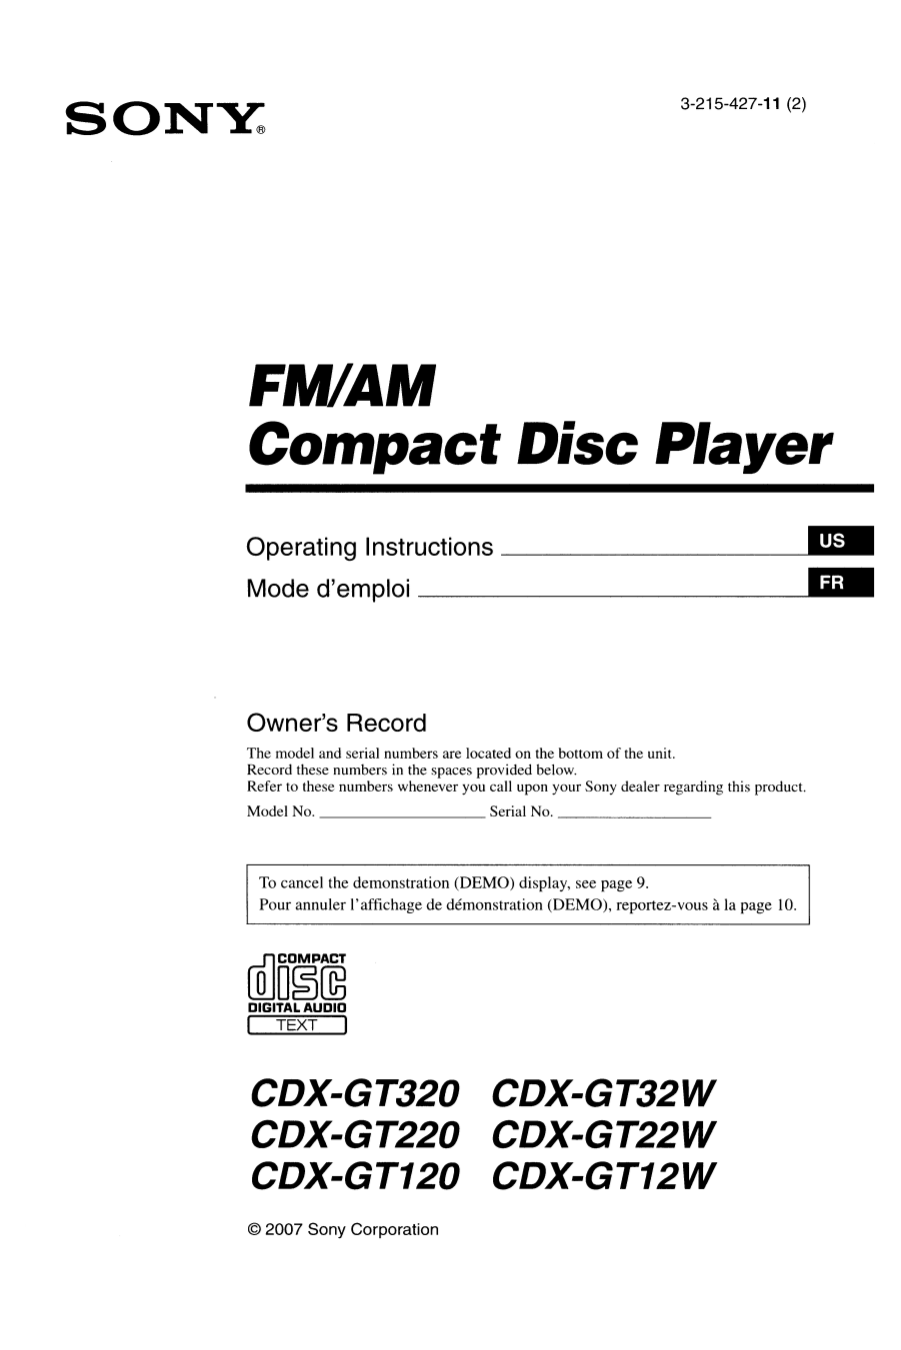 Sony cdx gt120 manual various owner manual guide download free pdf for sony cdx gt120 car receiver manual rh umlib com sony car radio cd player sony cdx gt120 installation manual publicscrutiny Gallery